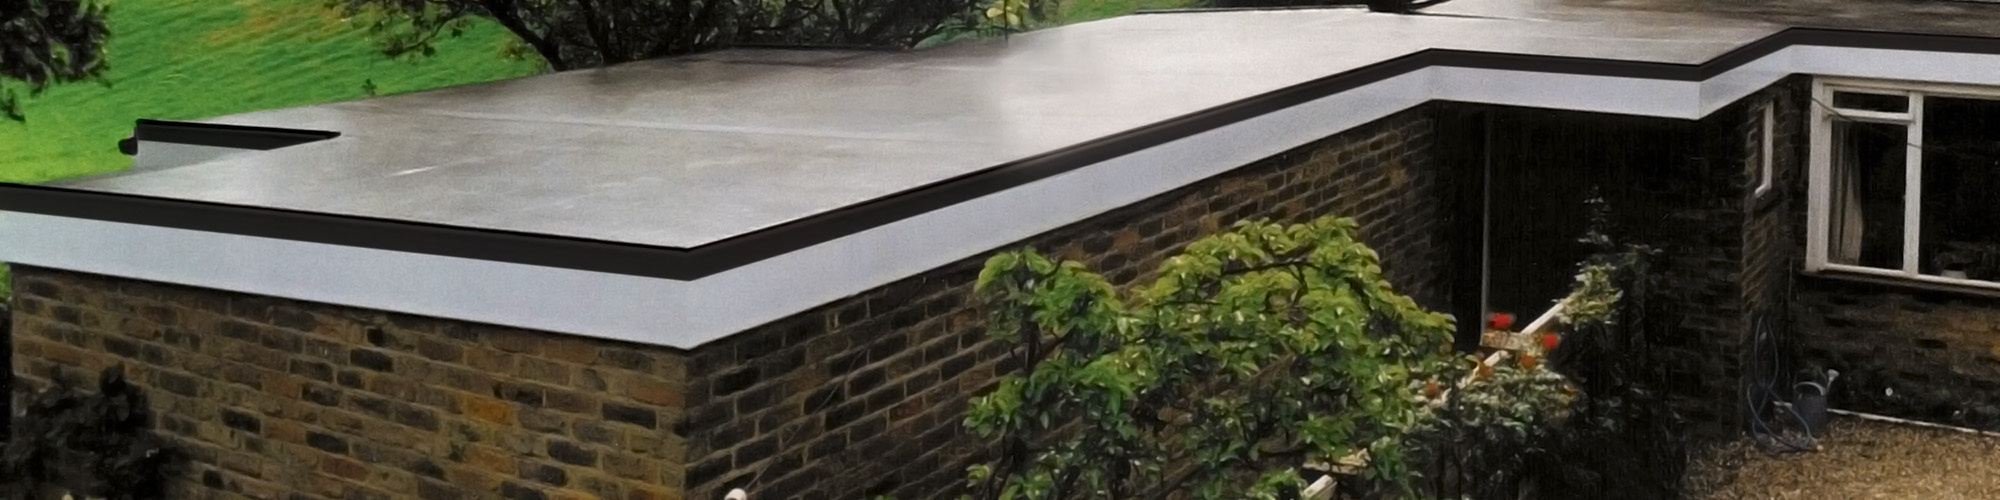 Classic Bond, roofing membrane, flat roofing, materials, waterproof